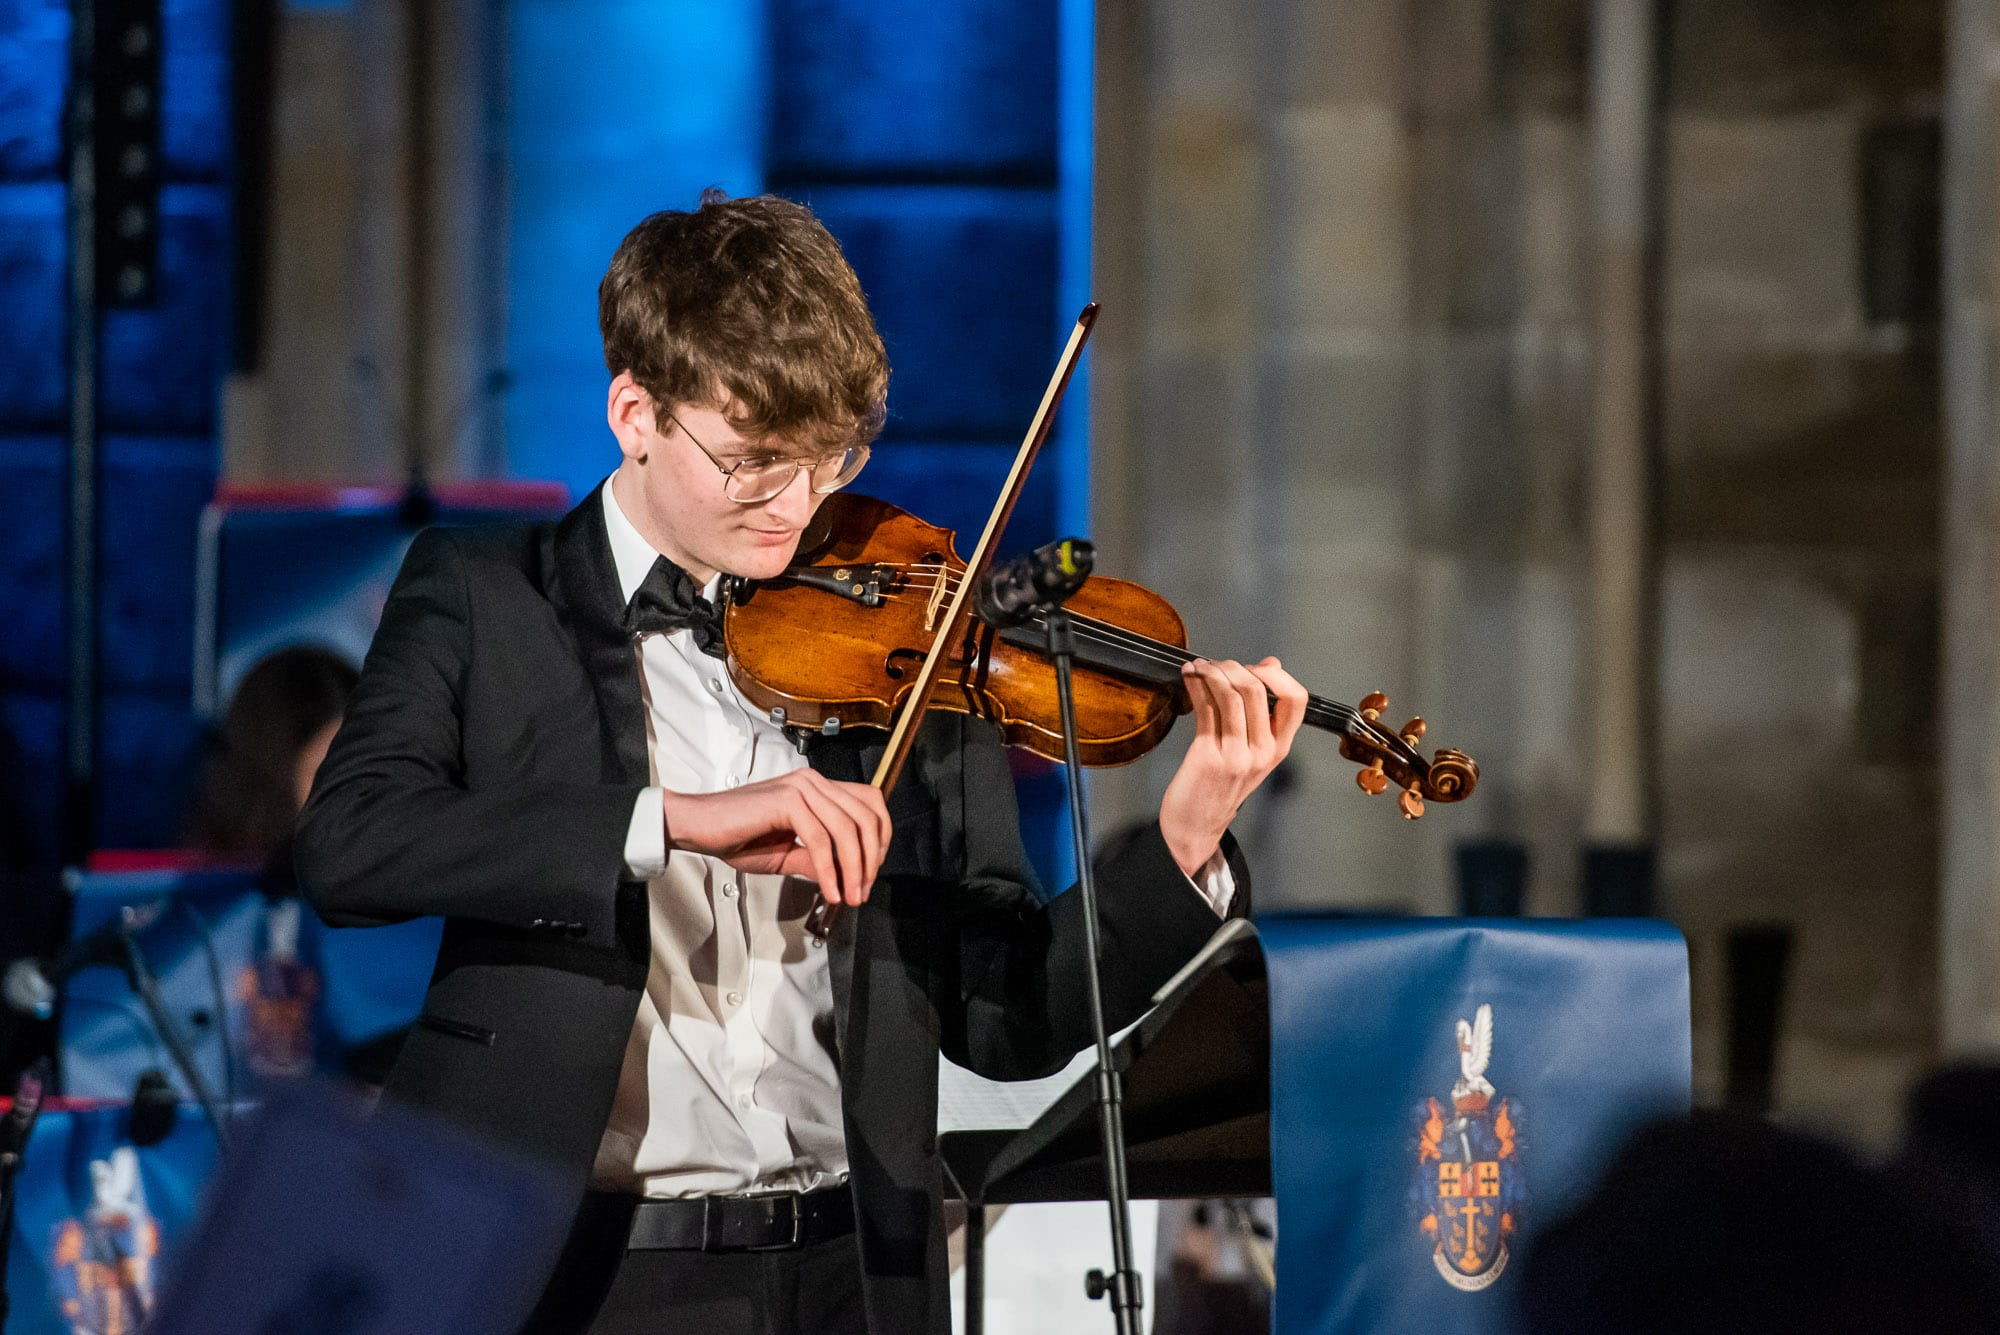 teenage student playing the violin in school concert